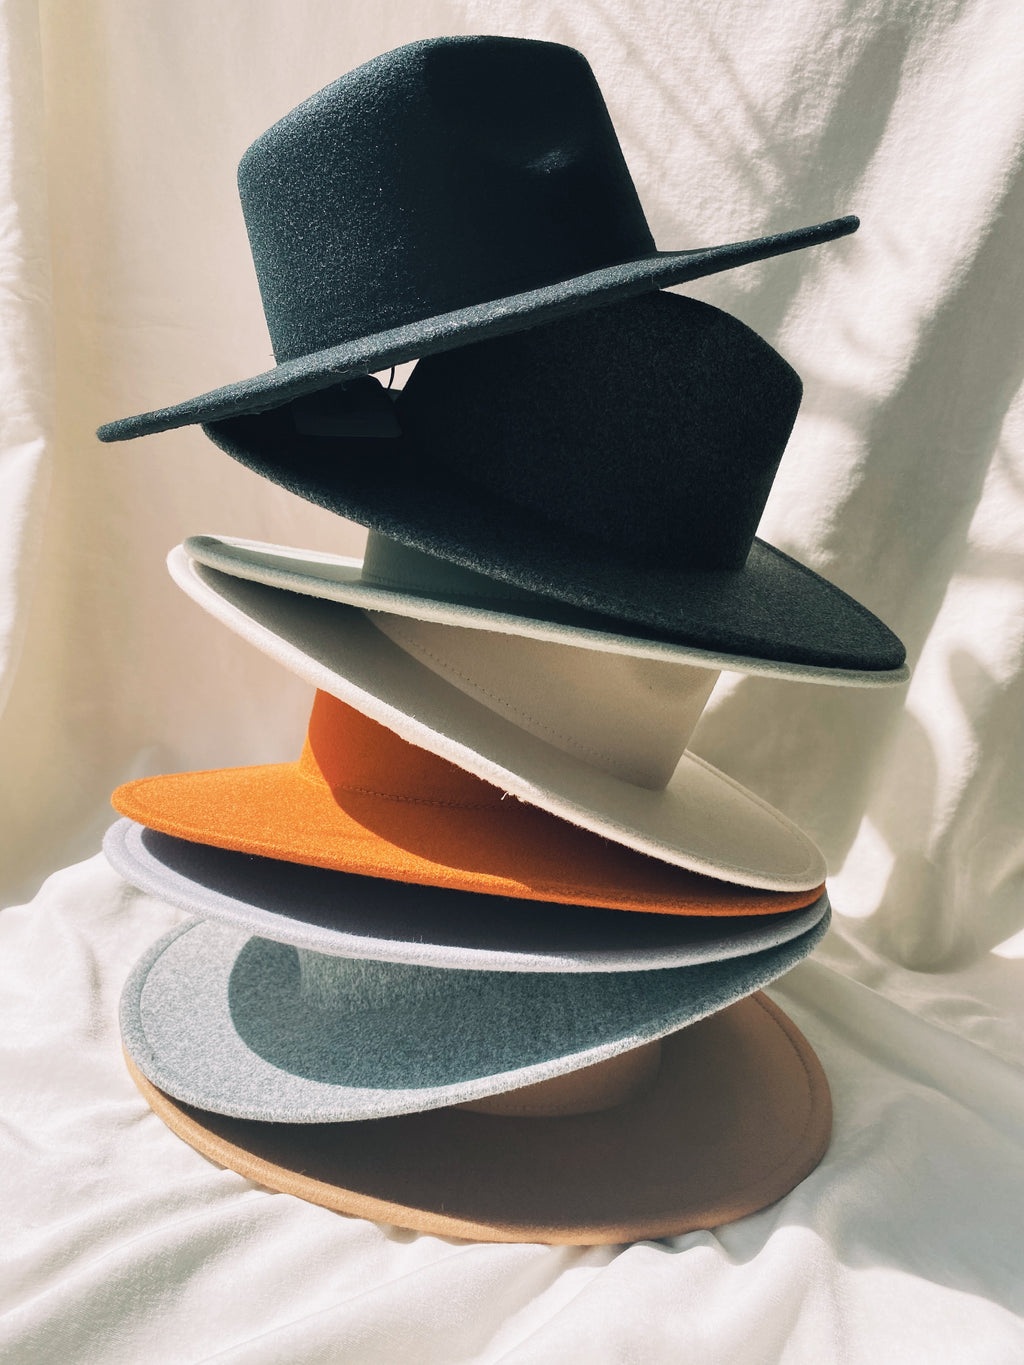 the veda wide brim hat